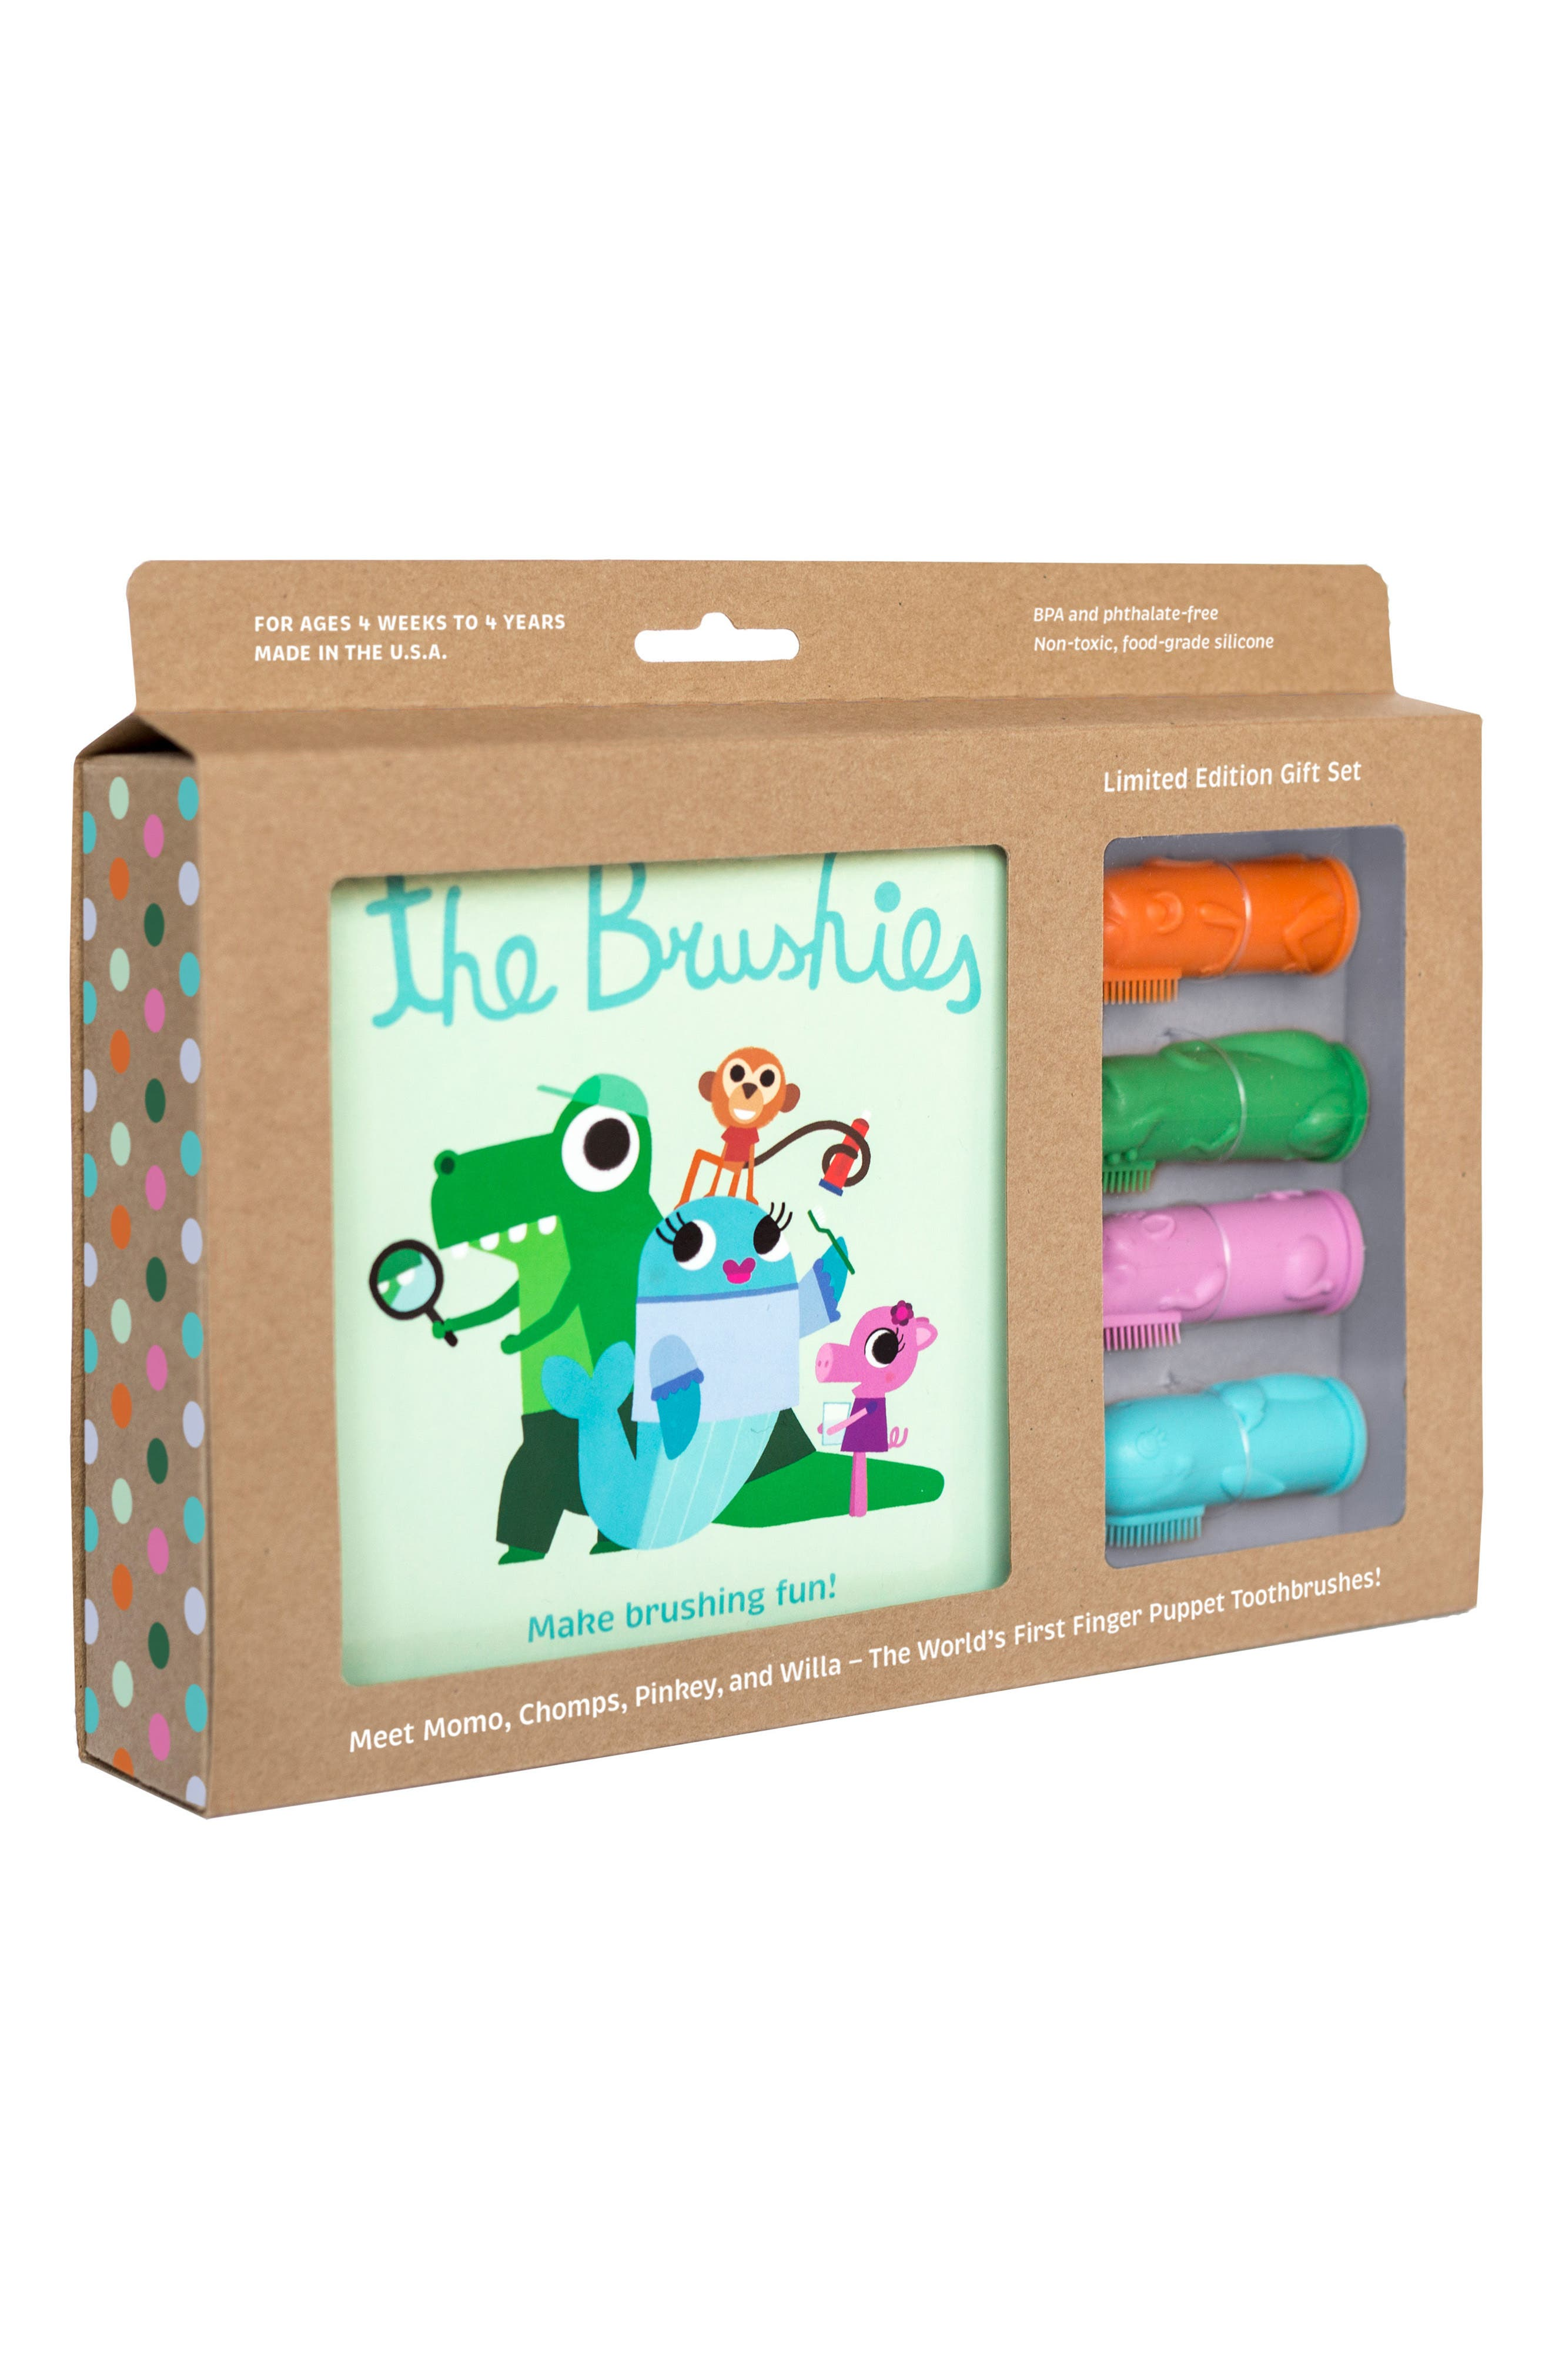 Alternate Image 1 Selected - Brushies Book & Finger Puppet Toothbrush Gift Set